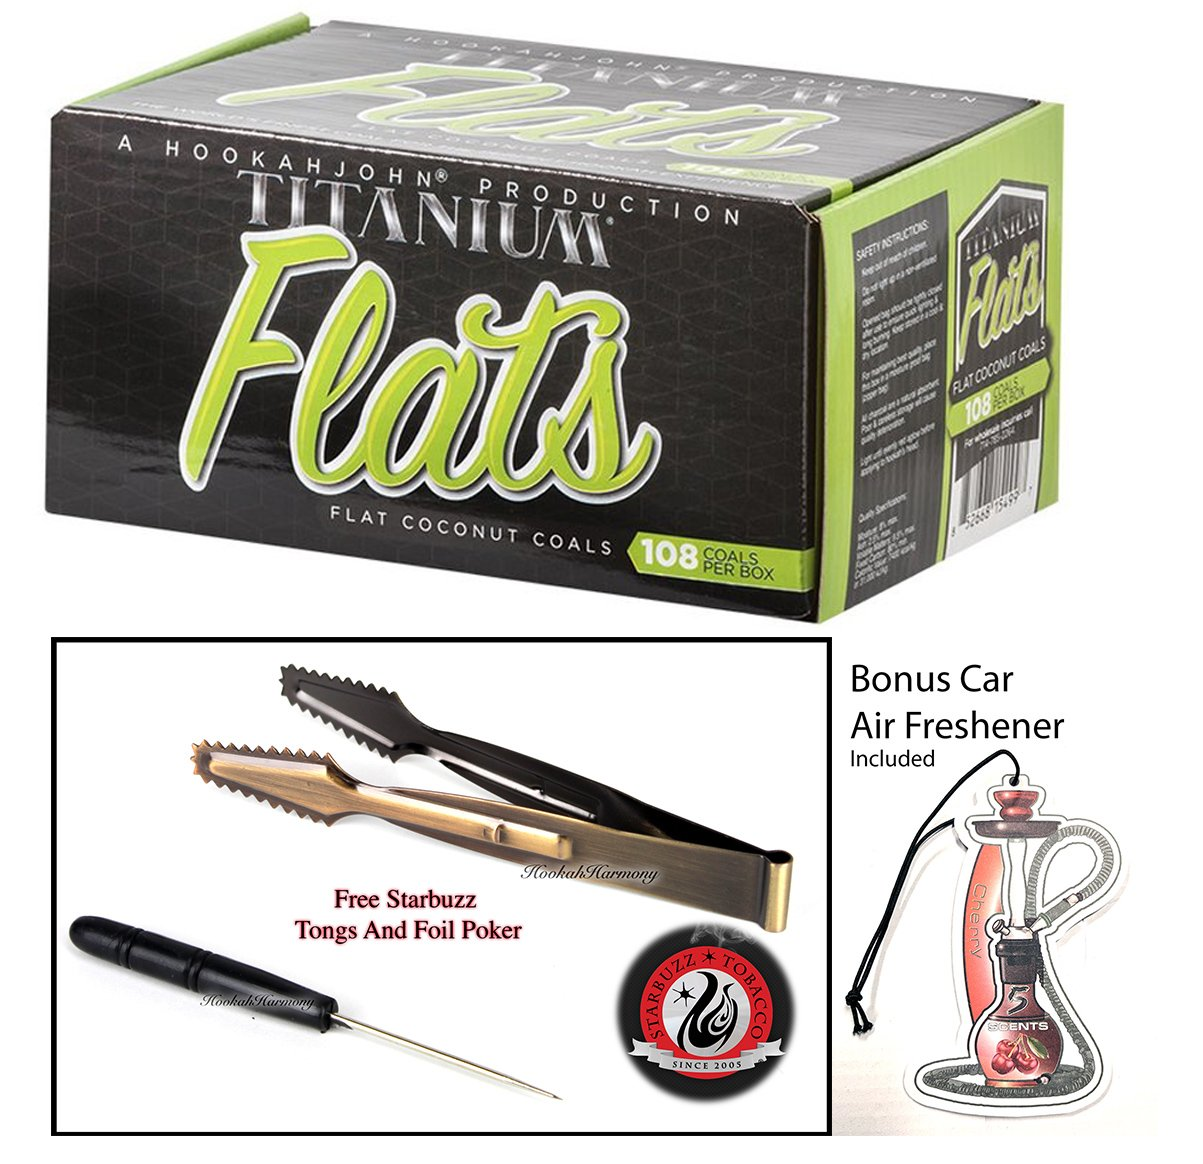 Titanium Natural Coconut Hookah Charcoal Flats 1kg Box with Starbuzz Coal Tongs And Foil Poker